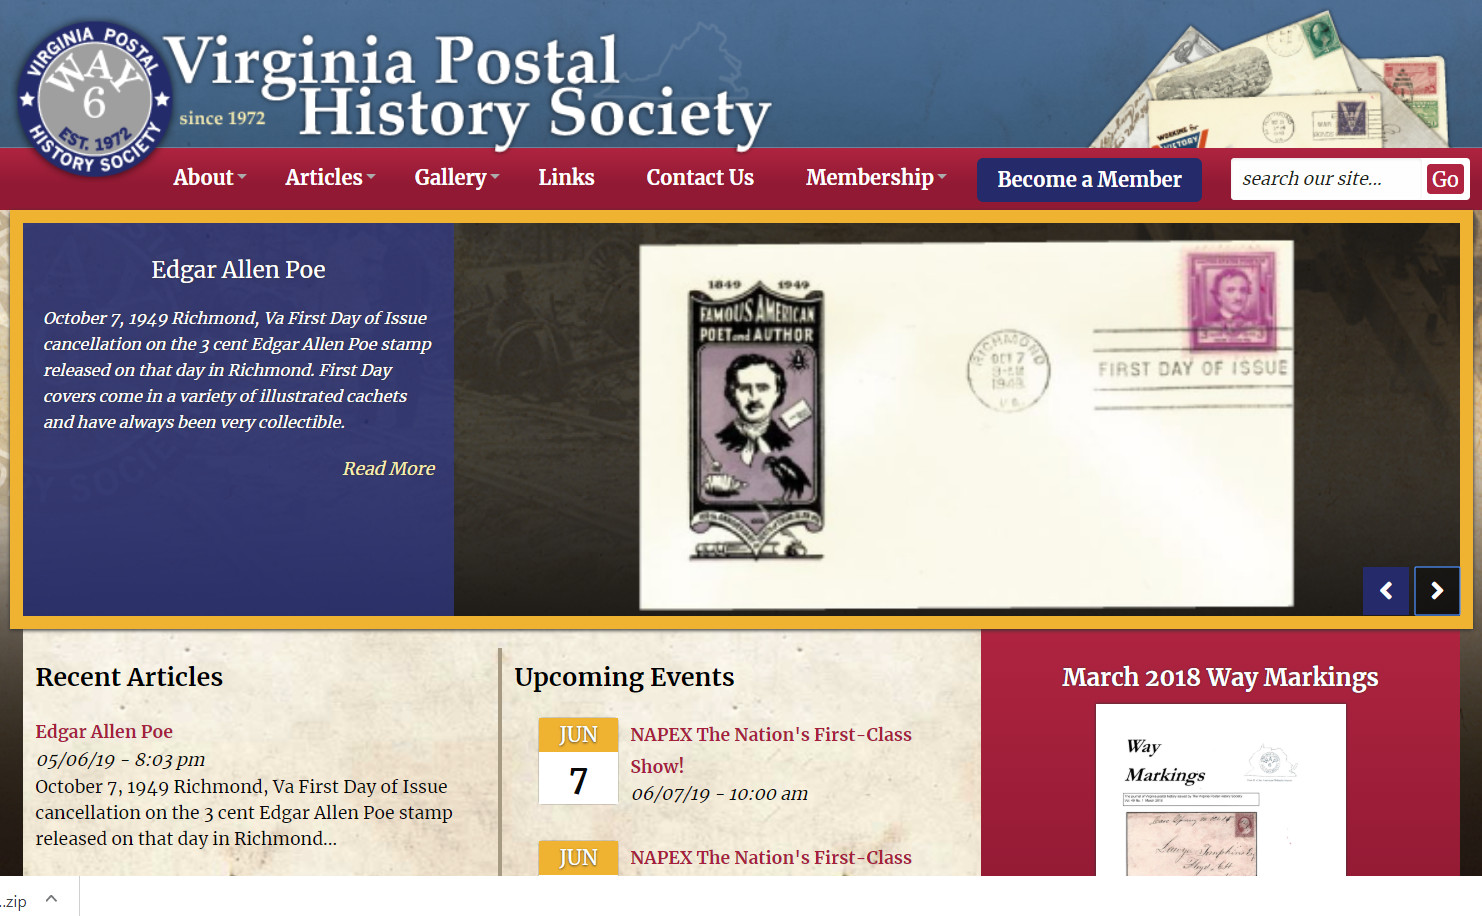 The Virginia Postal History Society has a new website!